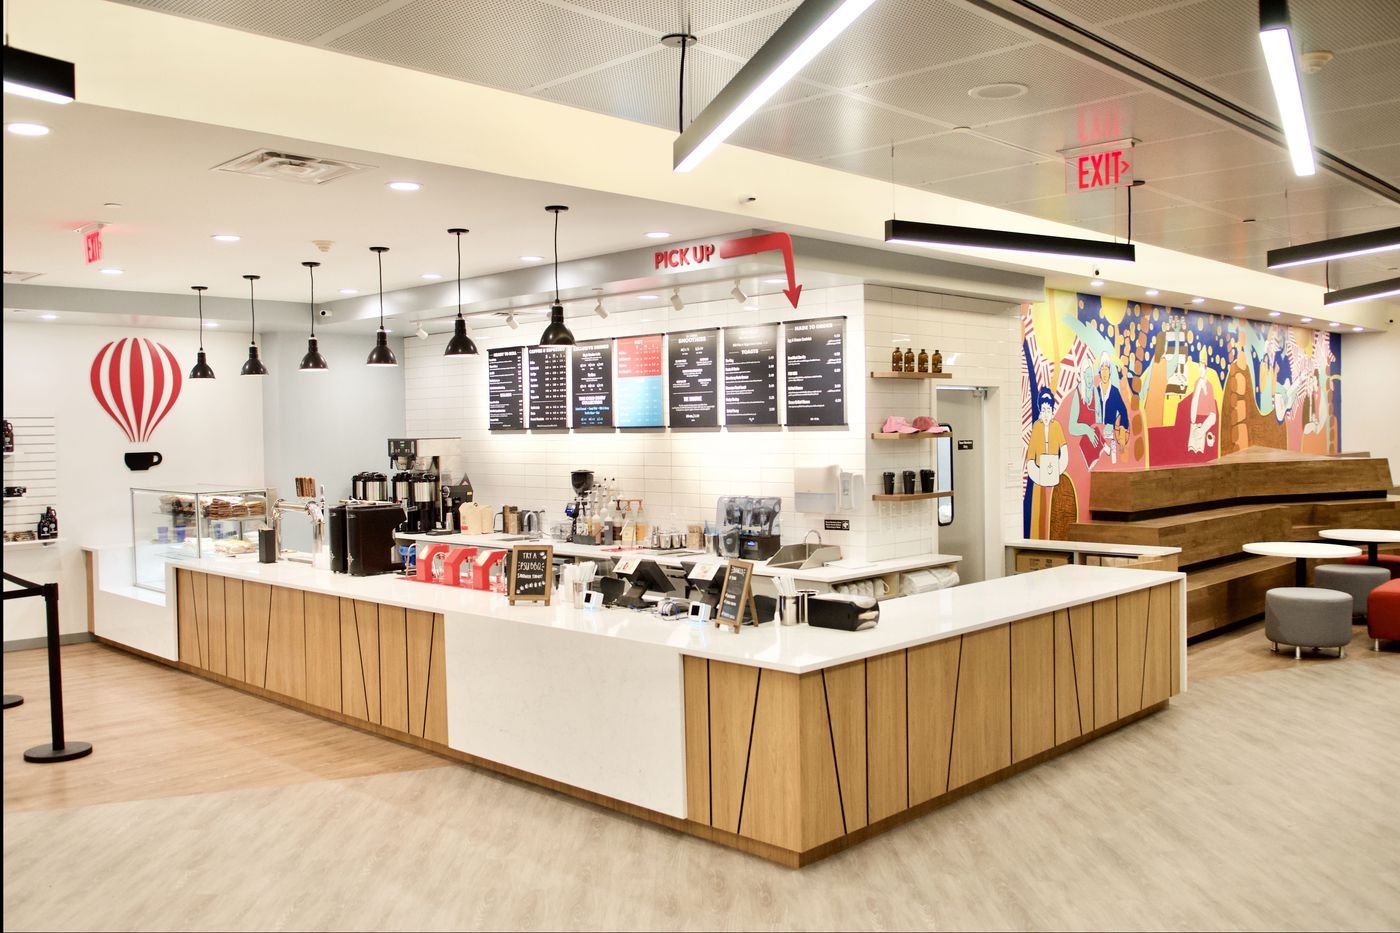 At Penn State, Saxbys opens its 7th student-run coffee shop